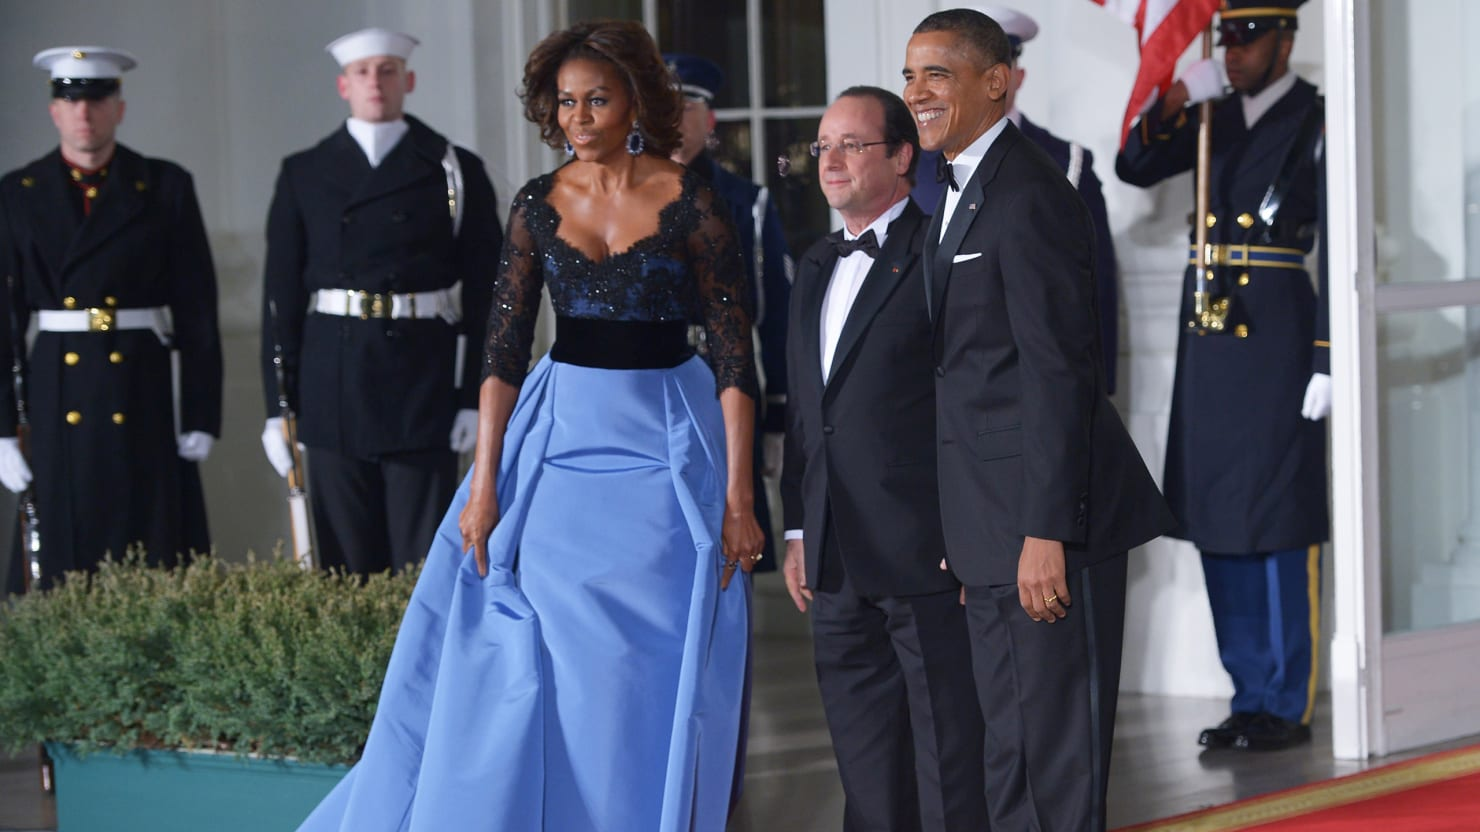 Michelle Obama Wore Carolina Herrera to State Dinner; 'Sports Illustrated' Models Make Flight Safety Video